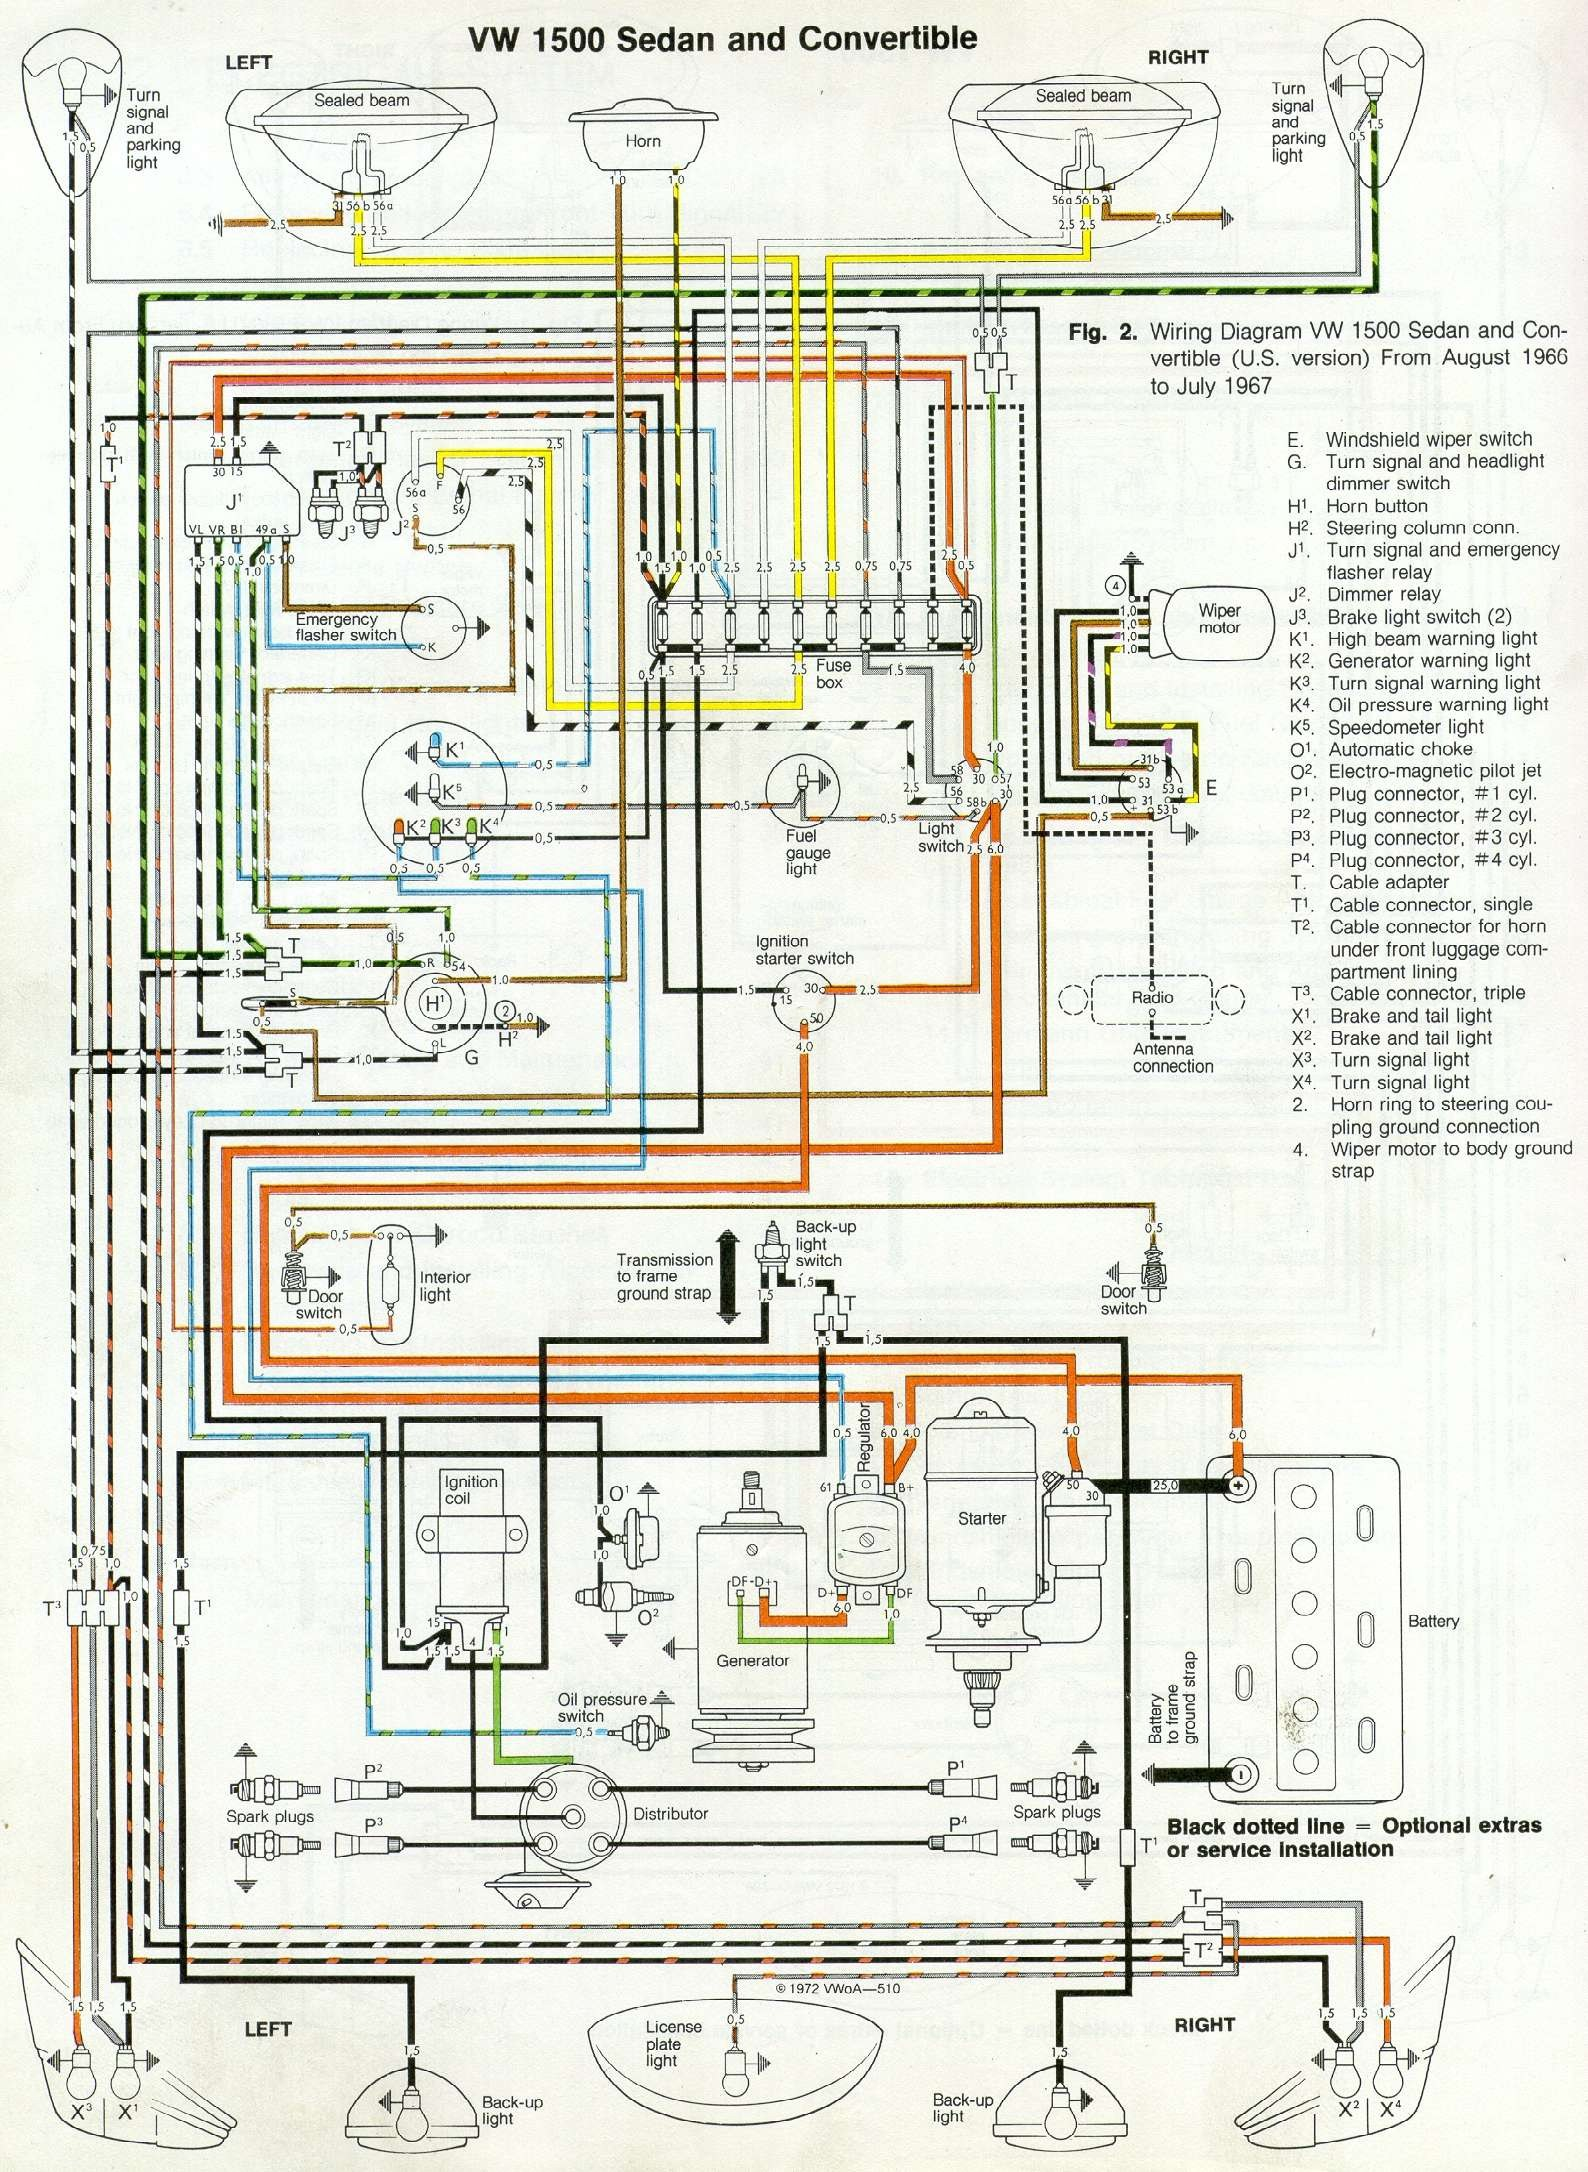 Volkswagen Type 2 Wiring Harness Schematics Diagrams For Gm 13020122 67 Vw Diagram Rh Mychampagnedaze Com Dodge A100 5